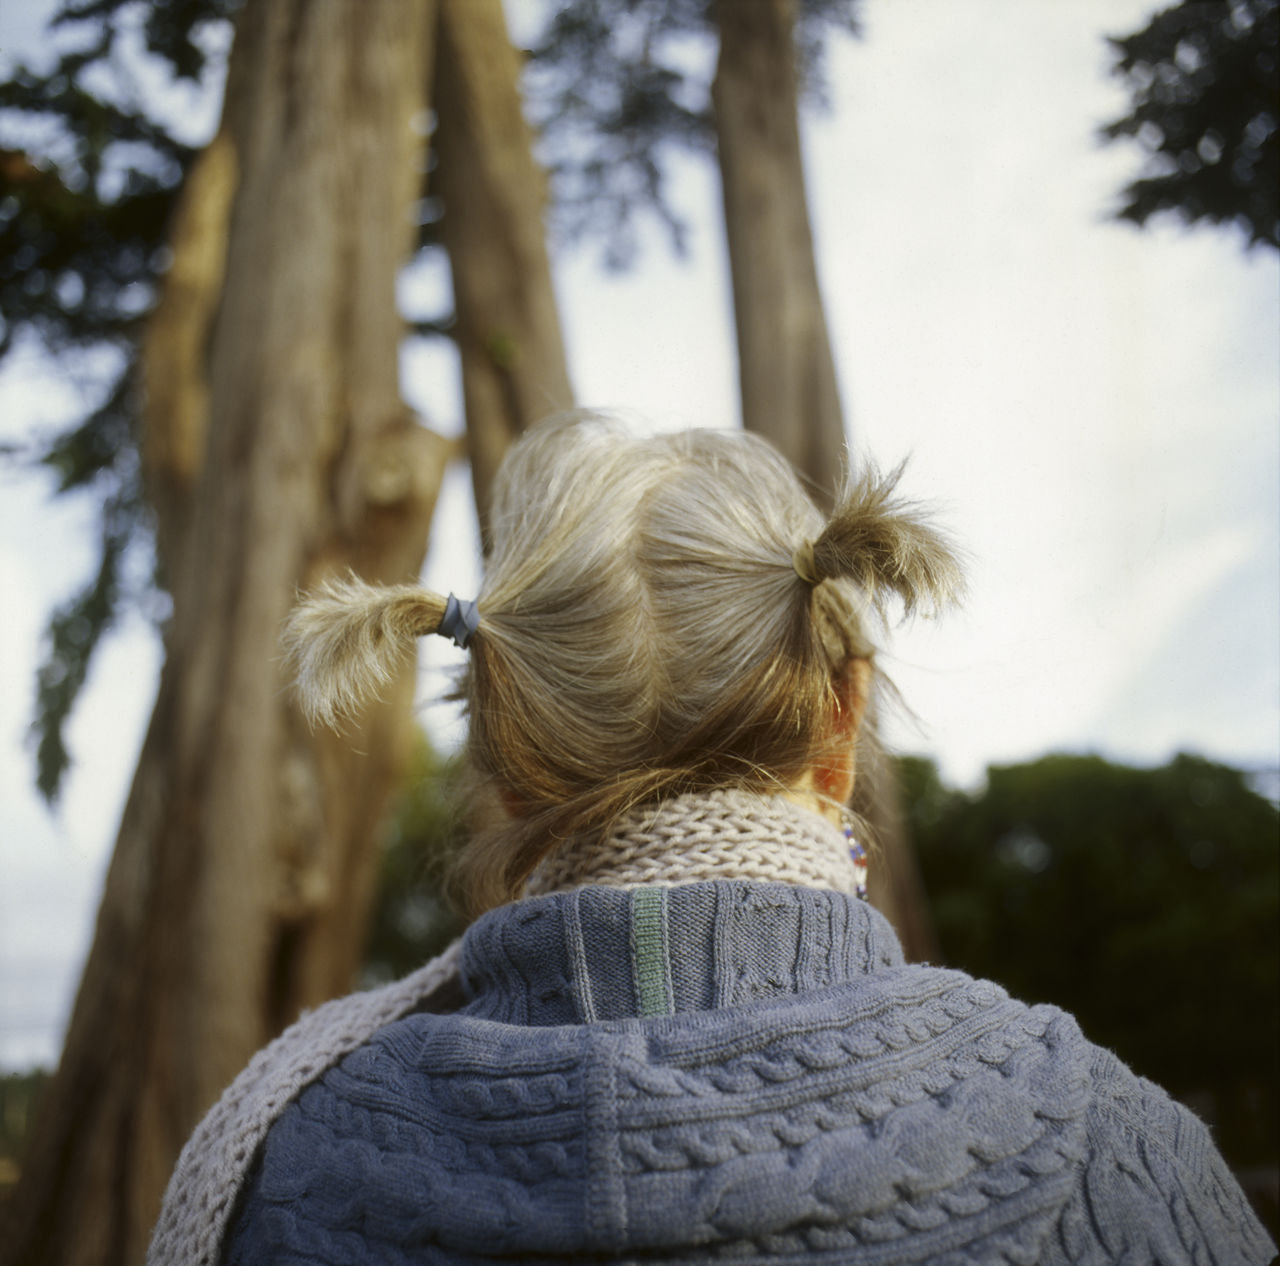 rear view, one person, real people, leisure activity, women, lifestyles, hairstyle, tree, headshot, hair, focus on foreground, adult, day, nature, portrait, winter, plant, warm clothing, clothing, outdoors, human hair, looking at view, scarf